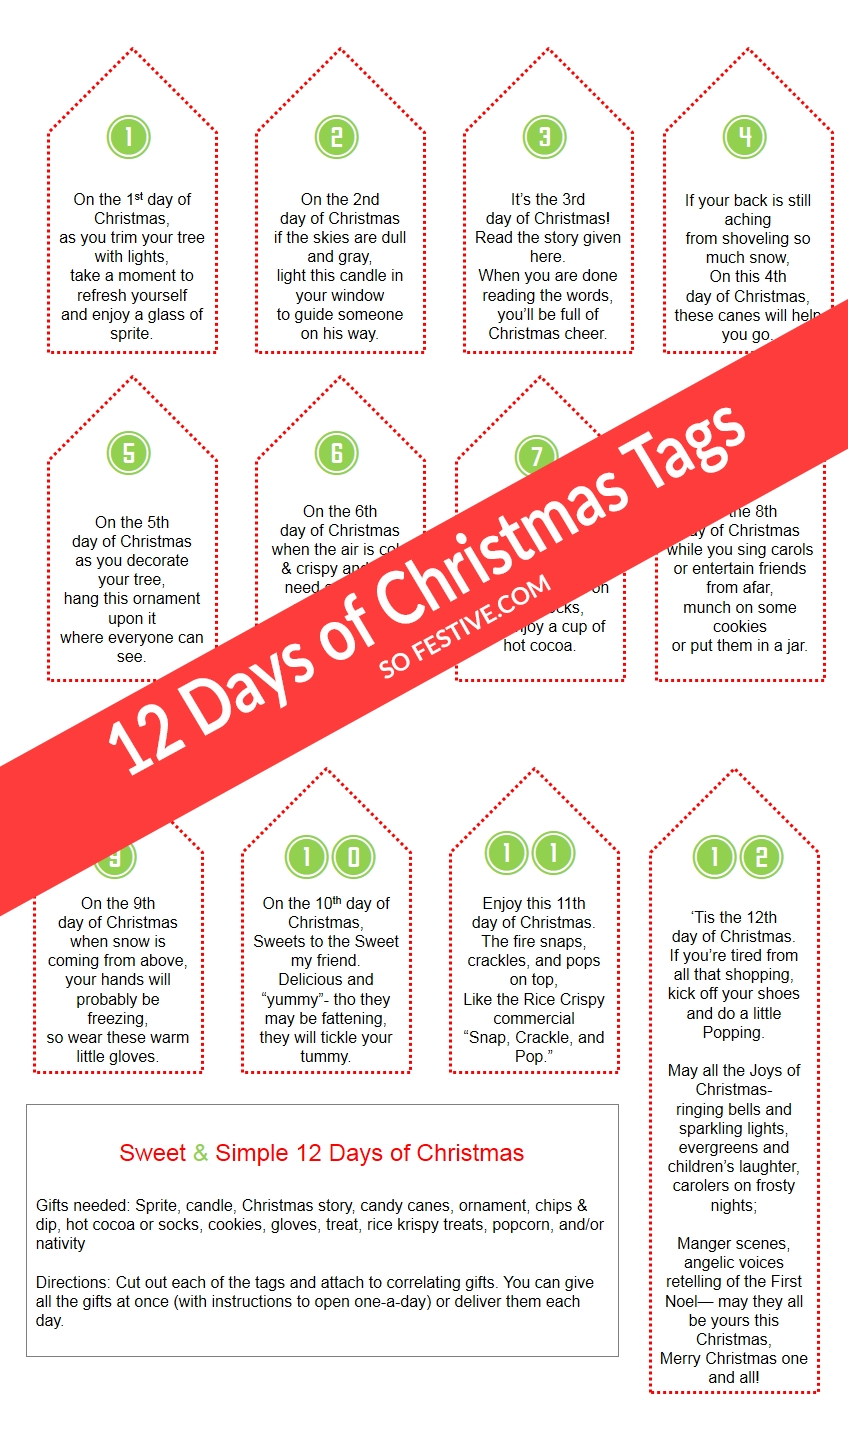 10 Nice Ideas For 12 Days Of Christmas sweet simple 12 days of christmas printables so festive 8 2020